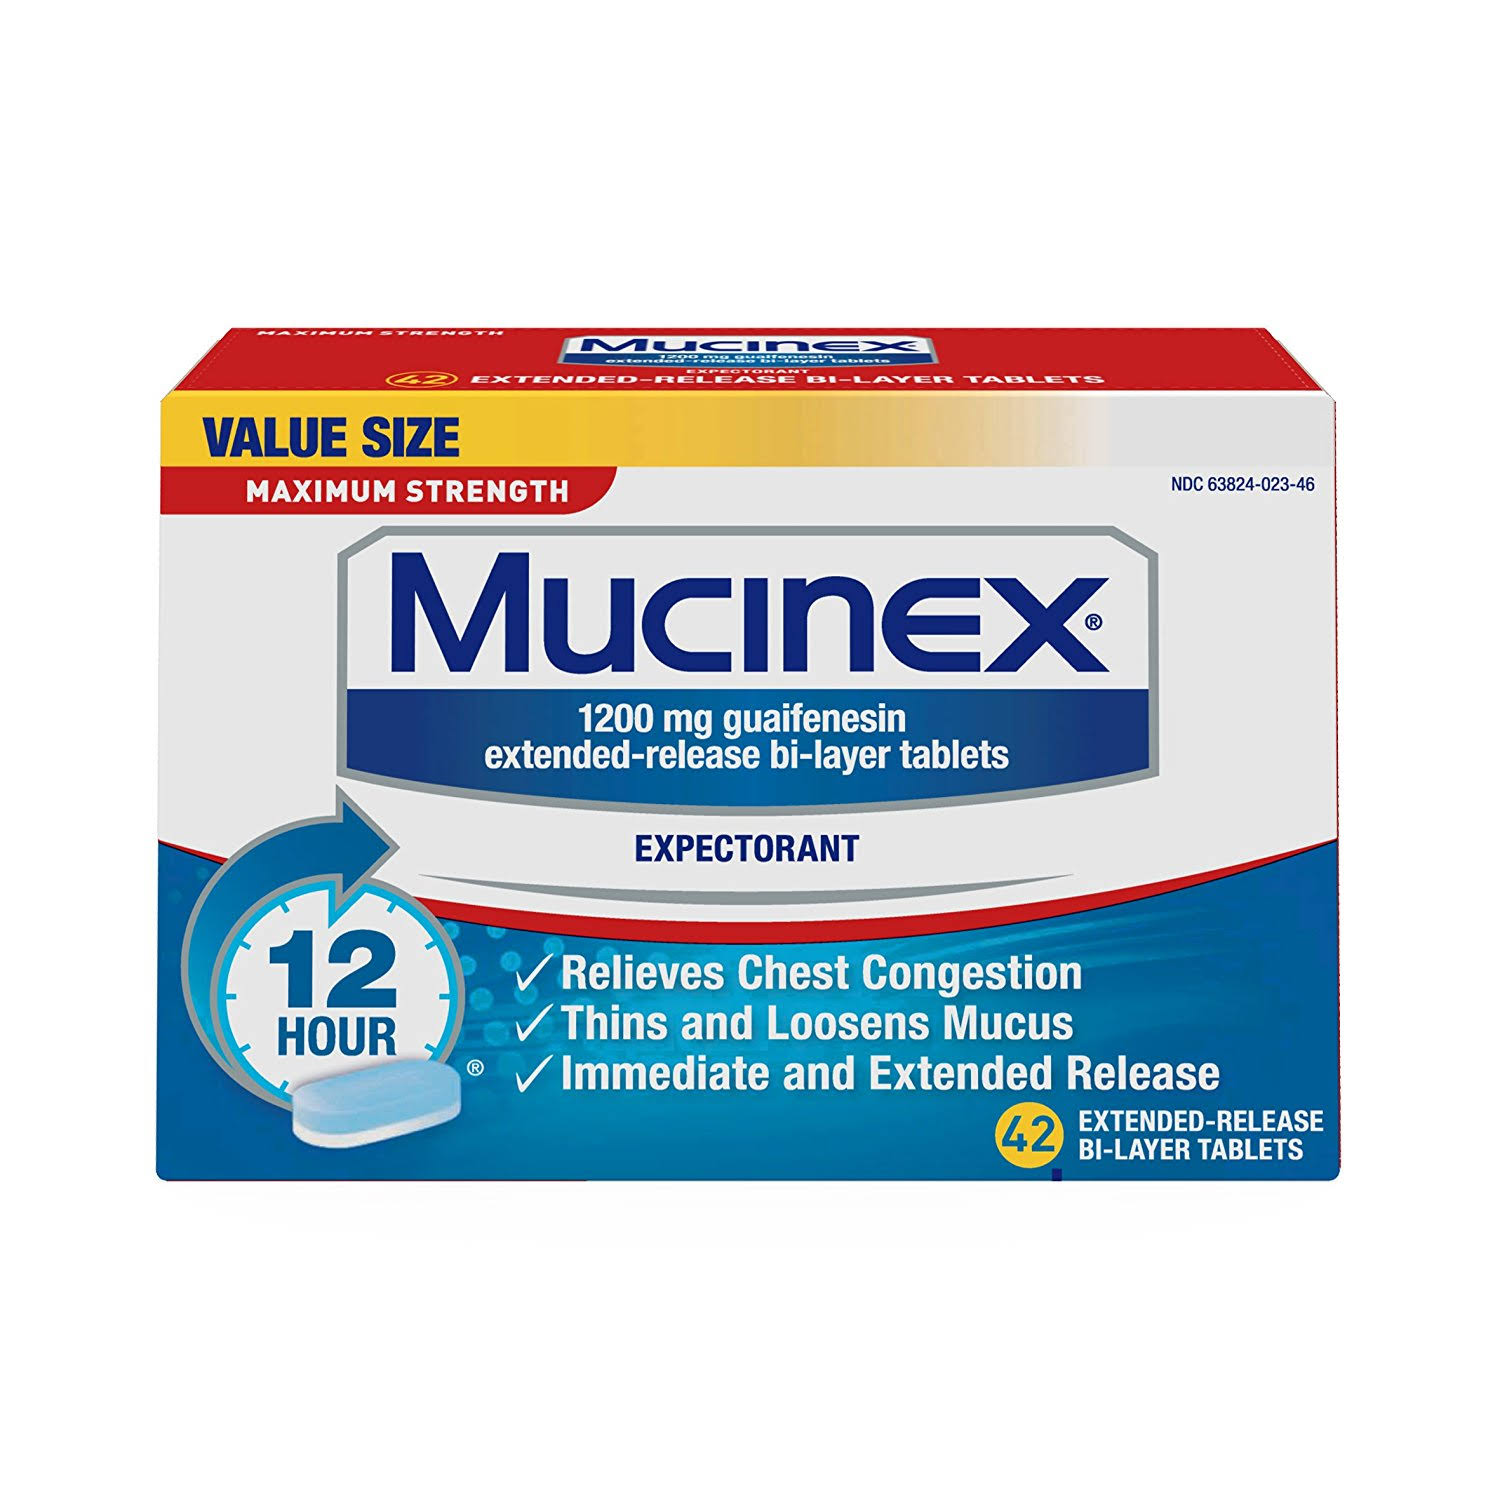 Mucinex Chest Congestion Expectorant - 42ct, Maximum Strength